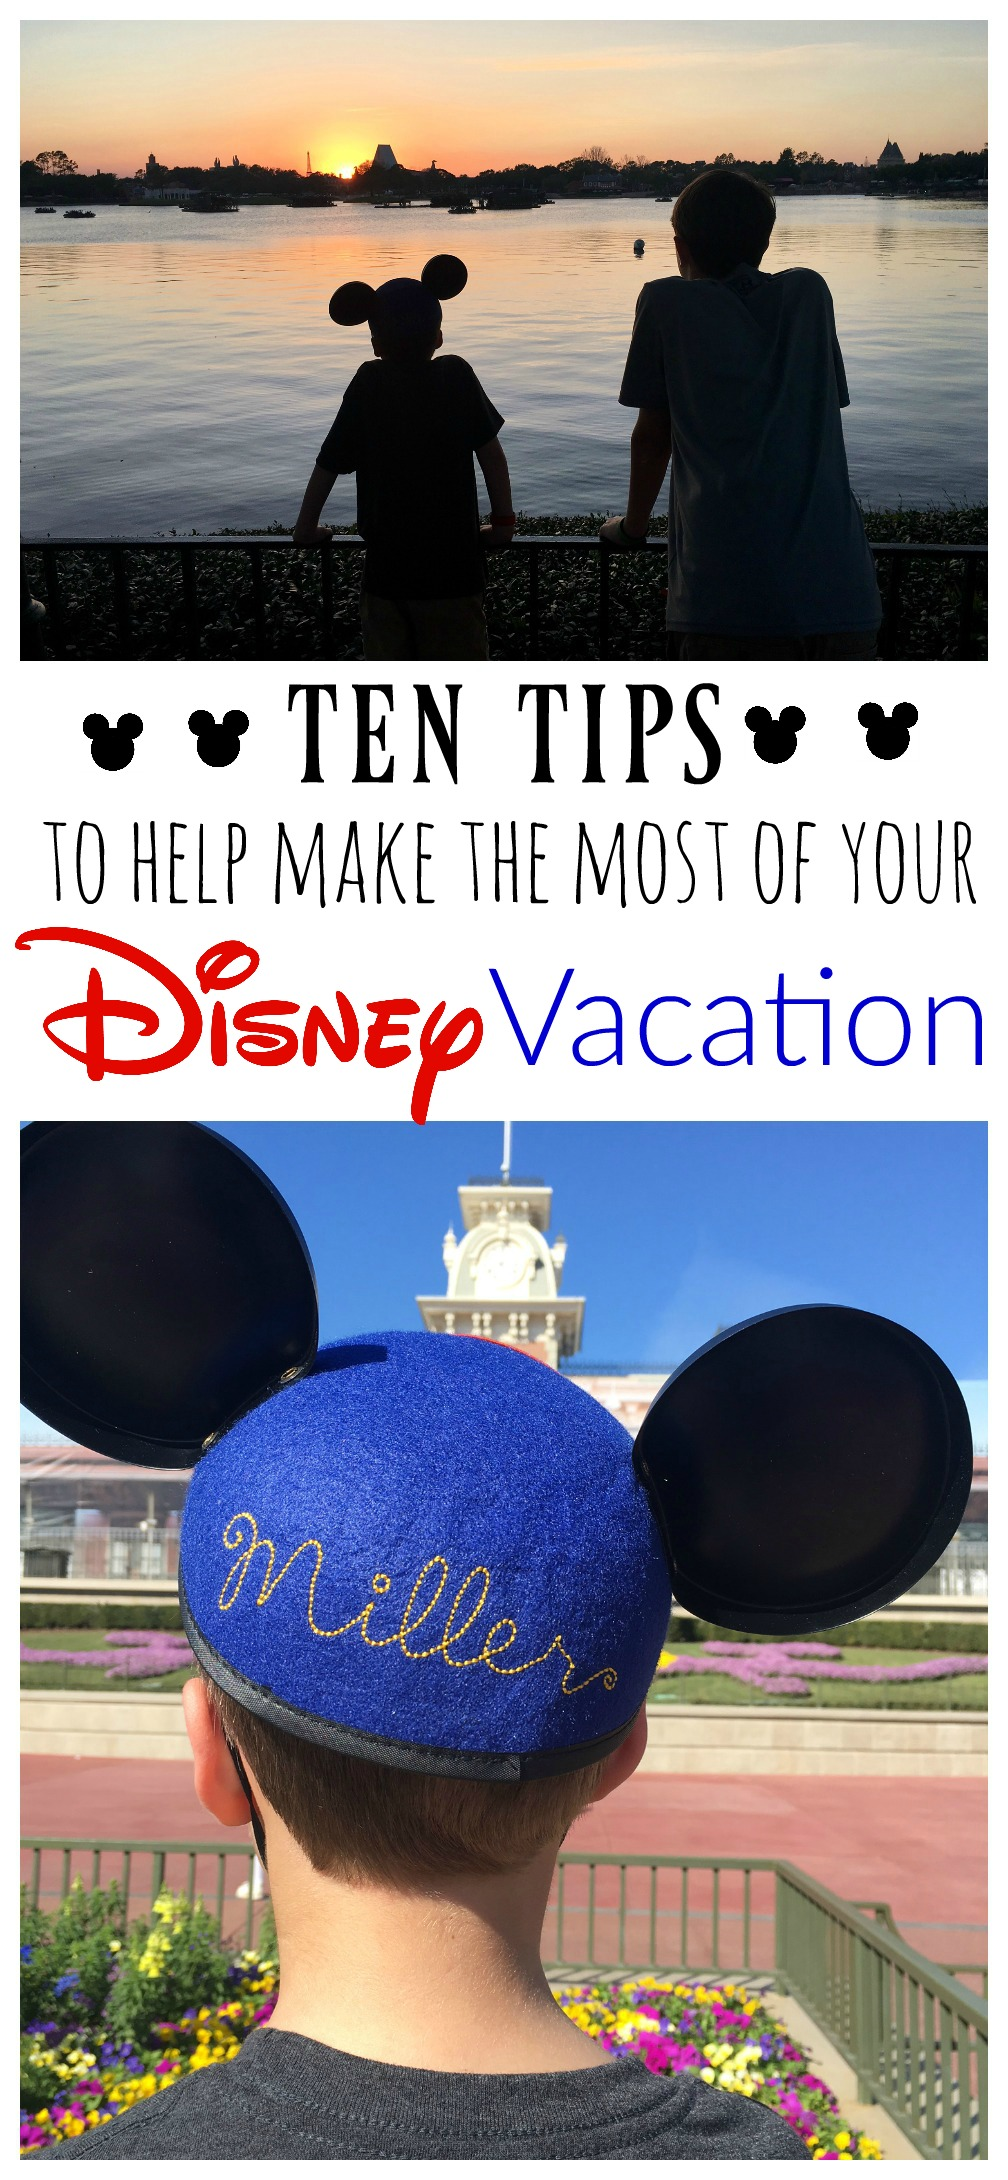 10 Tips to Help Make the Most of Your Disney Vacation ...